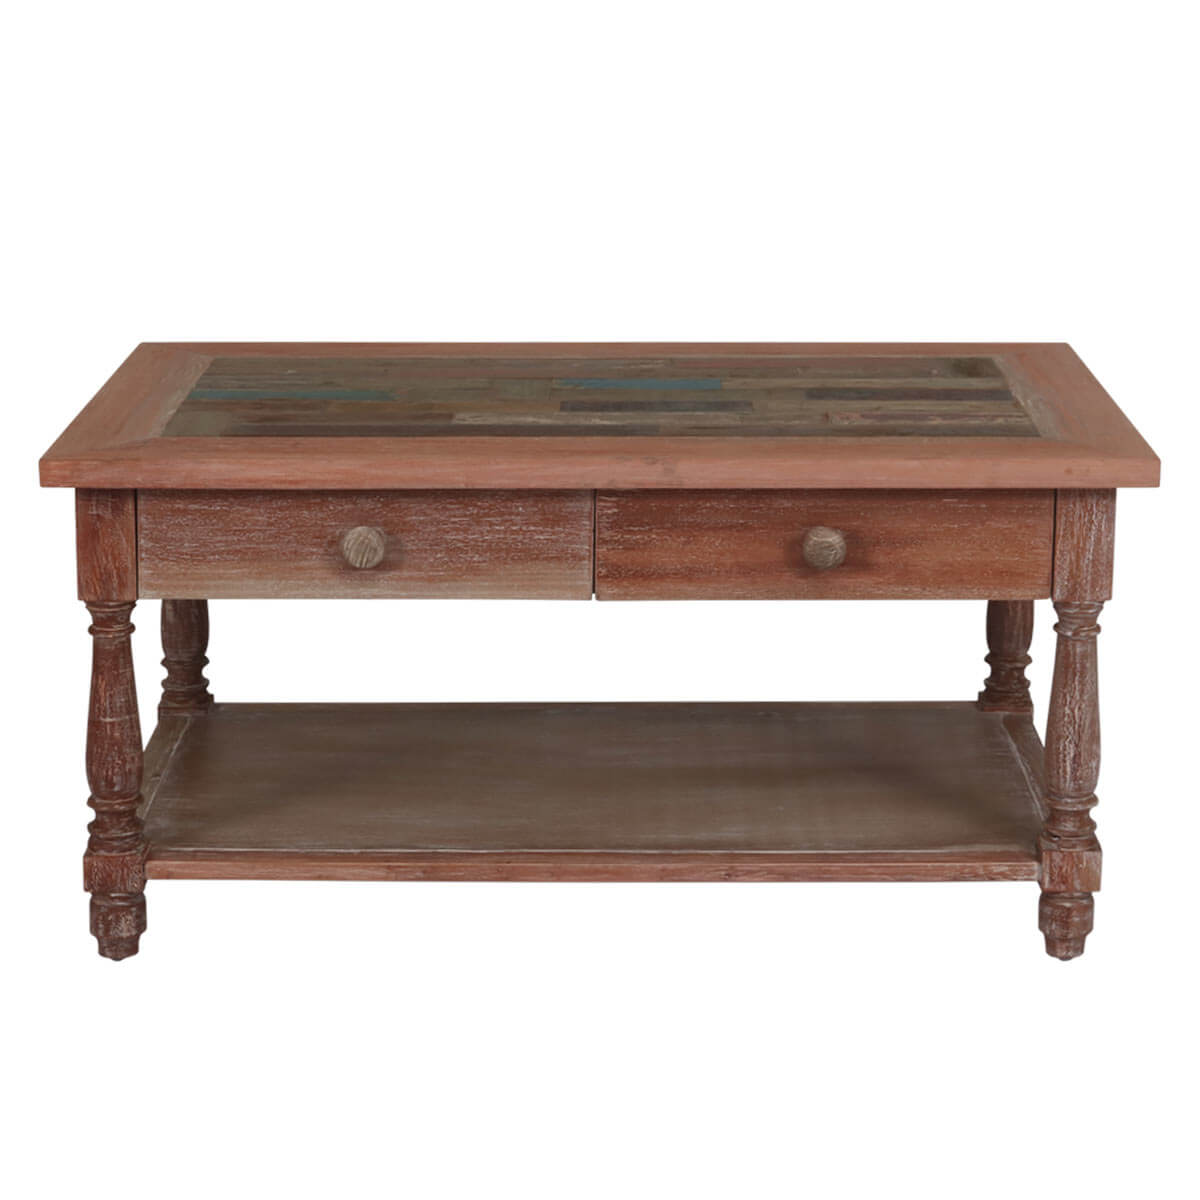 Industrial Wood Coffee Table Distressed Designs: Distressed Reclaimed Wood 2 Drawer Balustrade Coffee Table